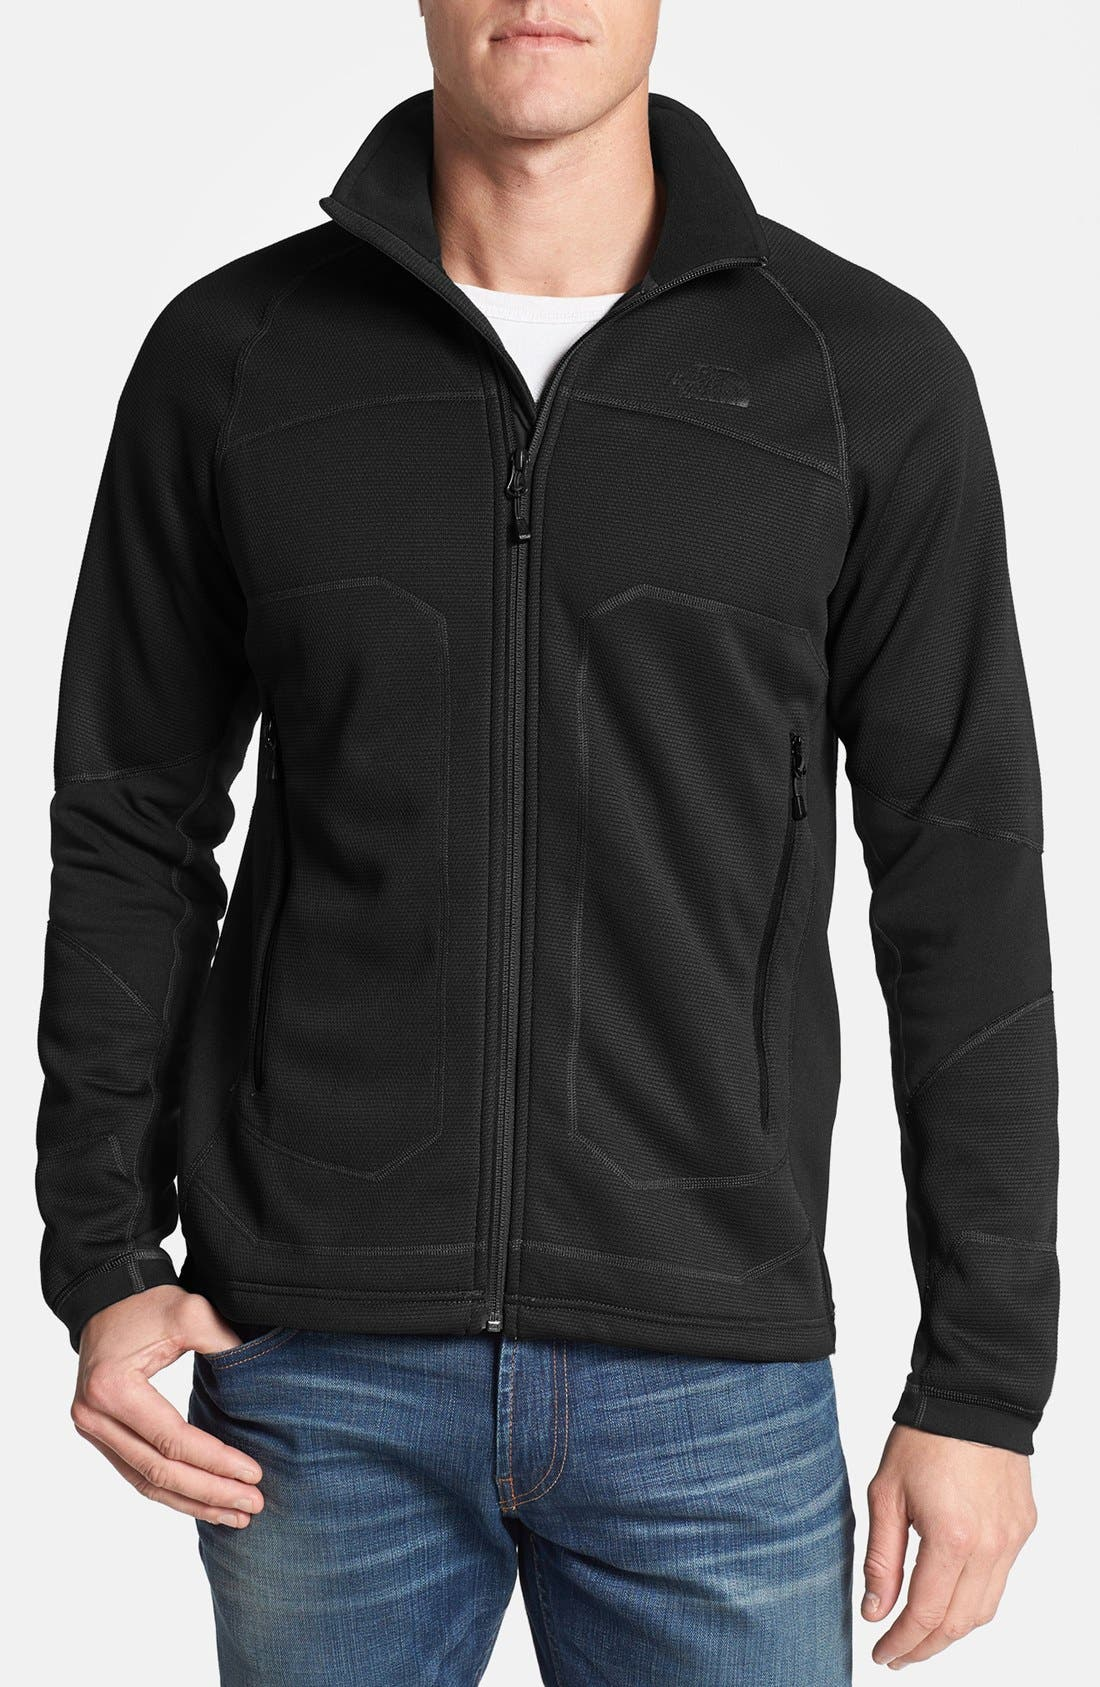 Main Image - The North Face 'Stealth Byron' Full Zip Sweater